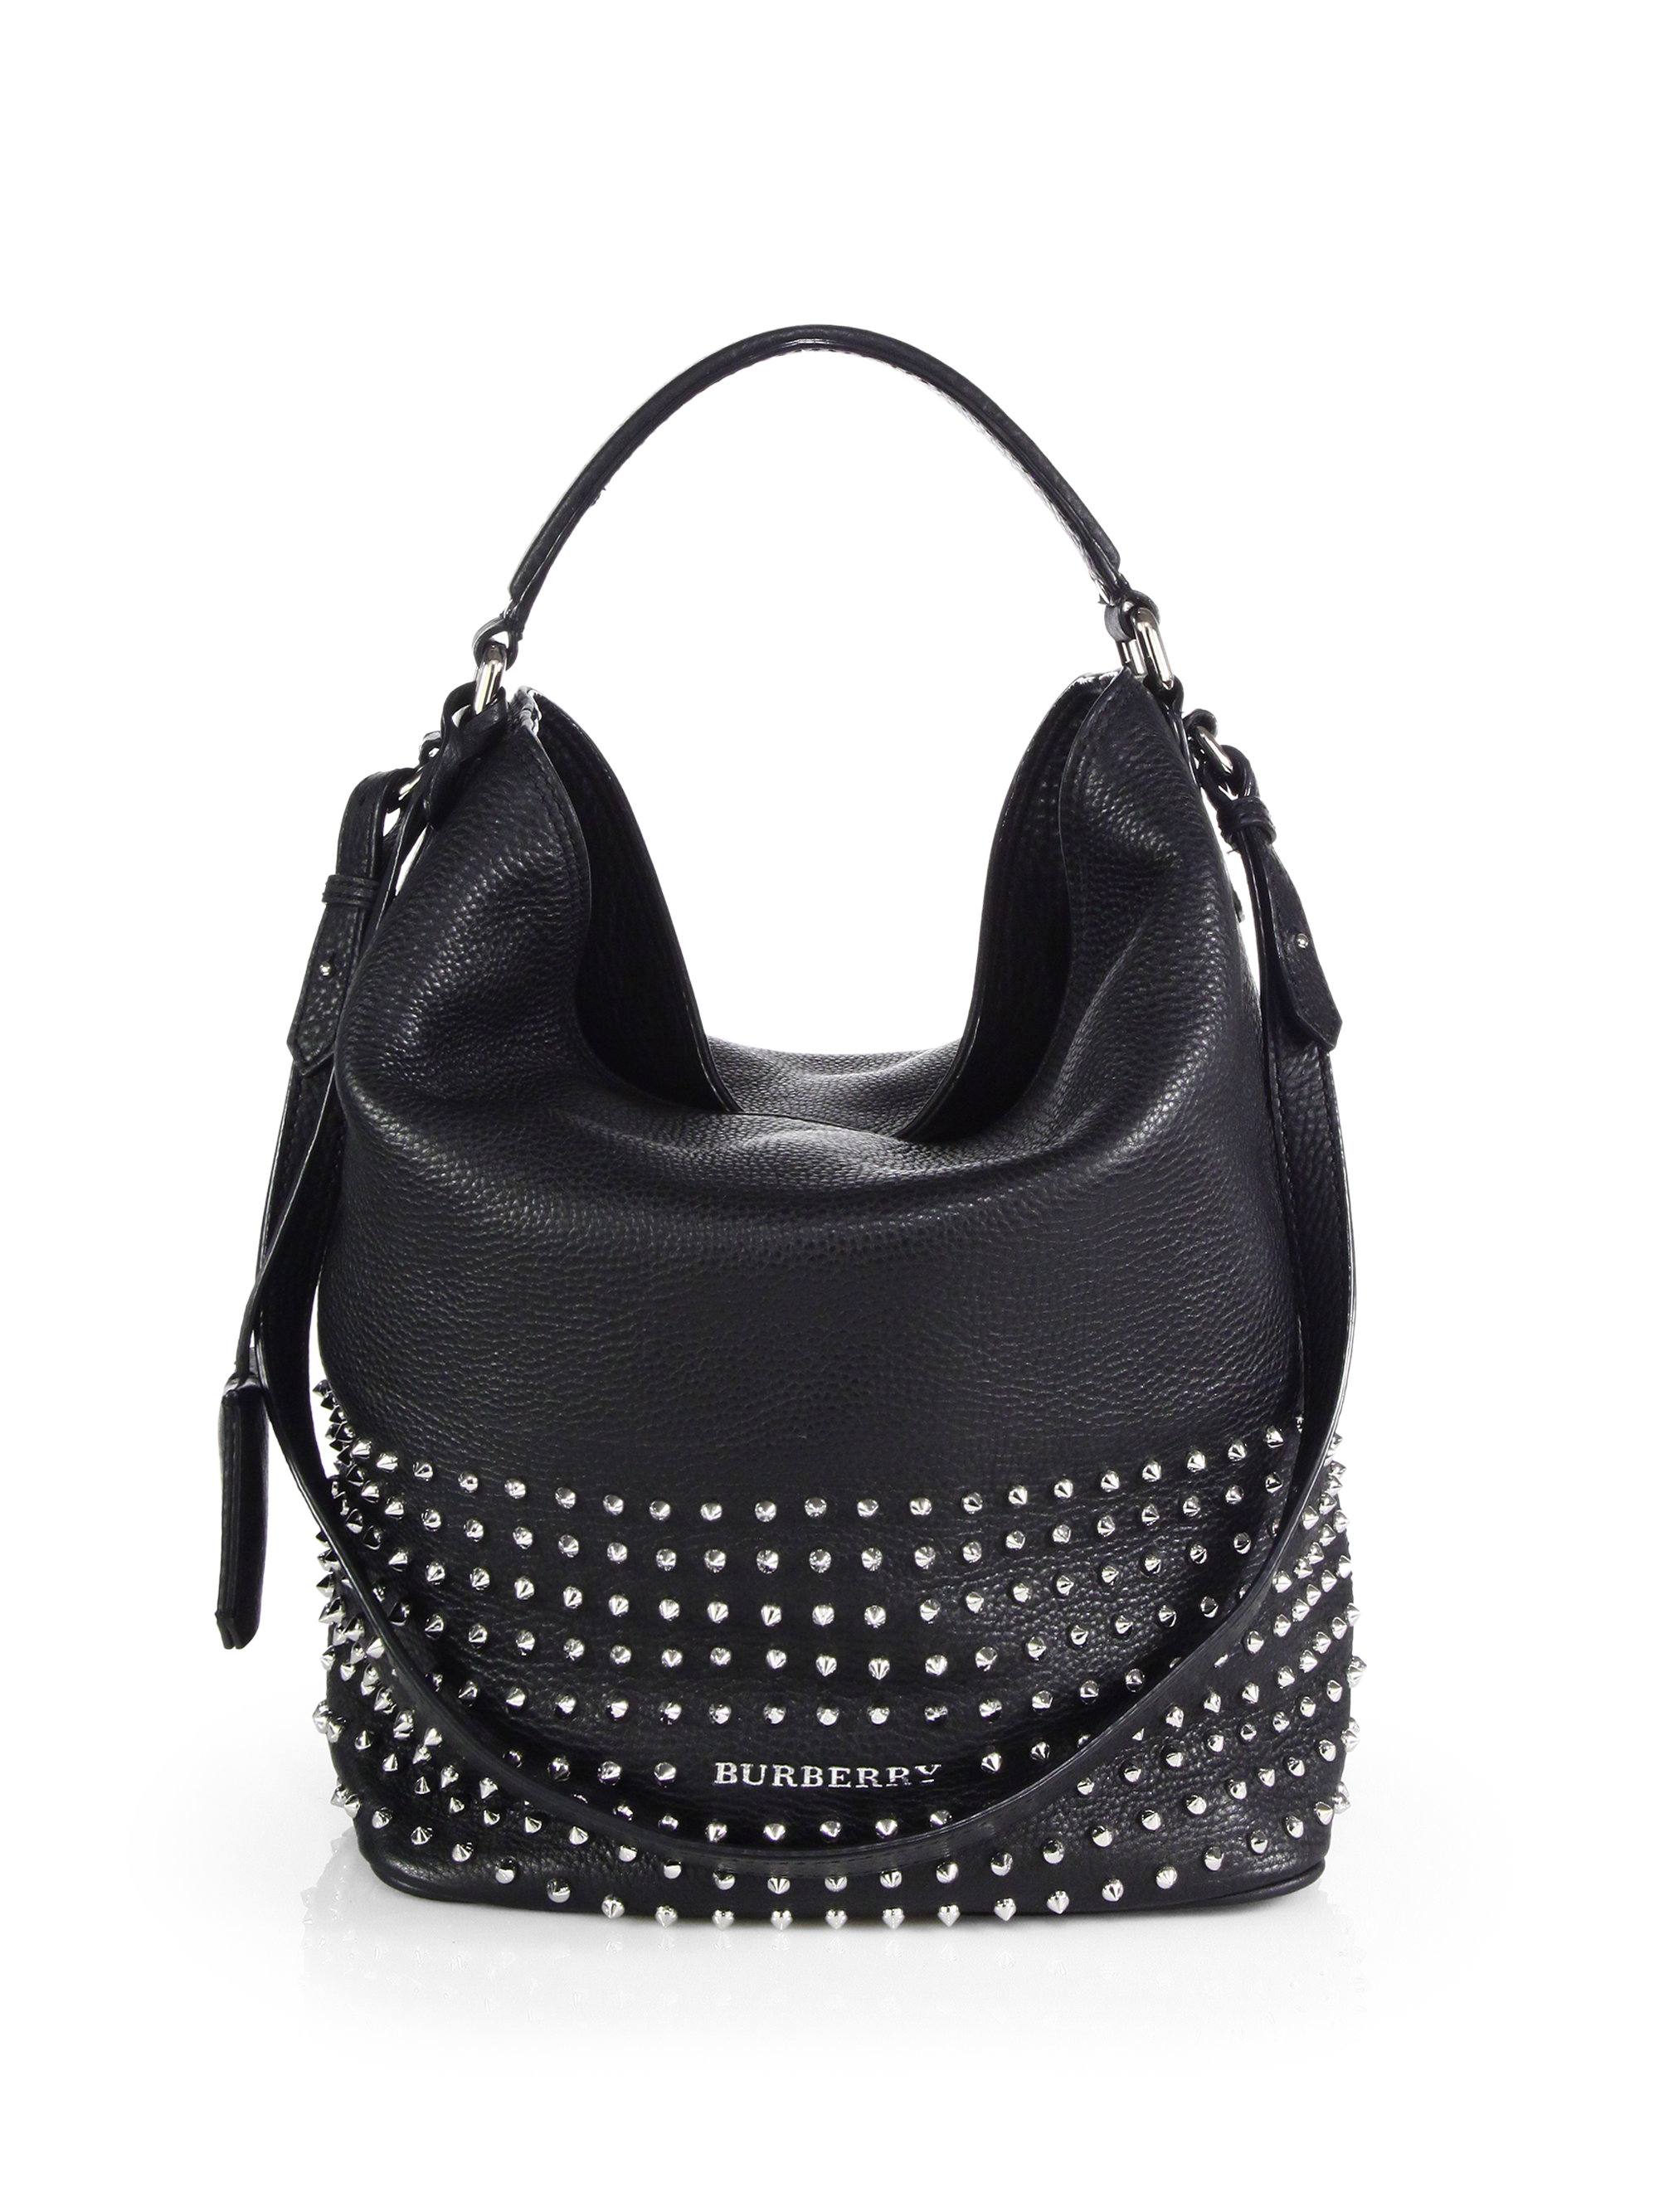 Burberry Susanna Medium Studded Bucket Bag in Black  313bed1a8c7fa